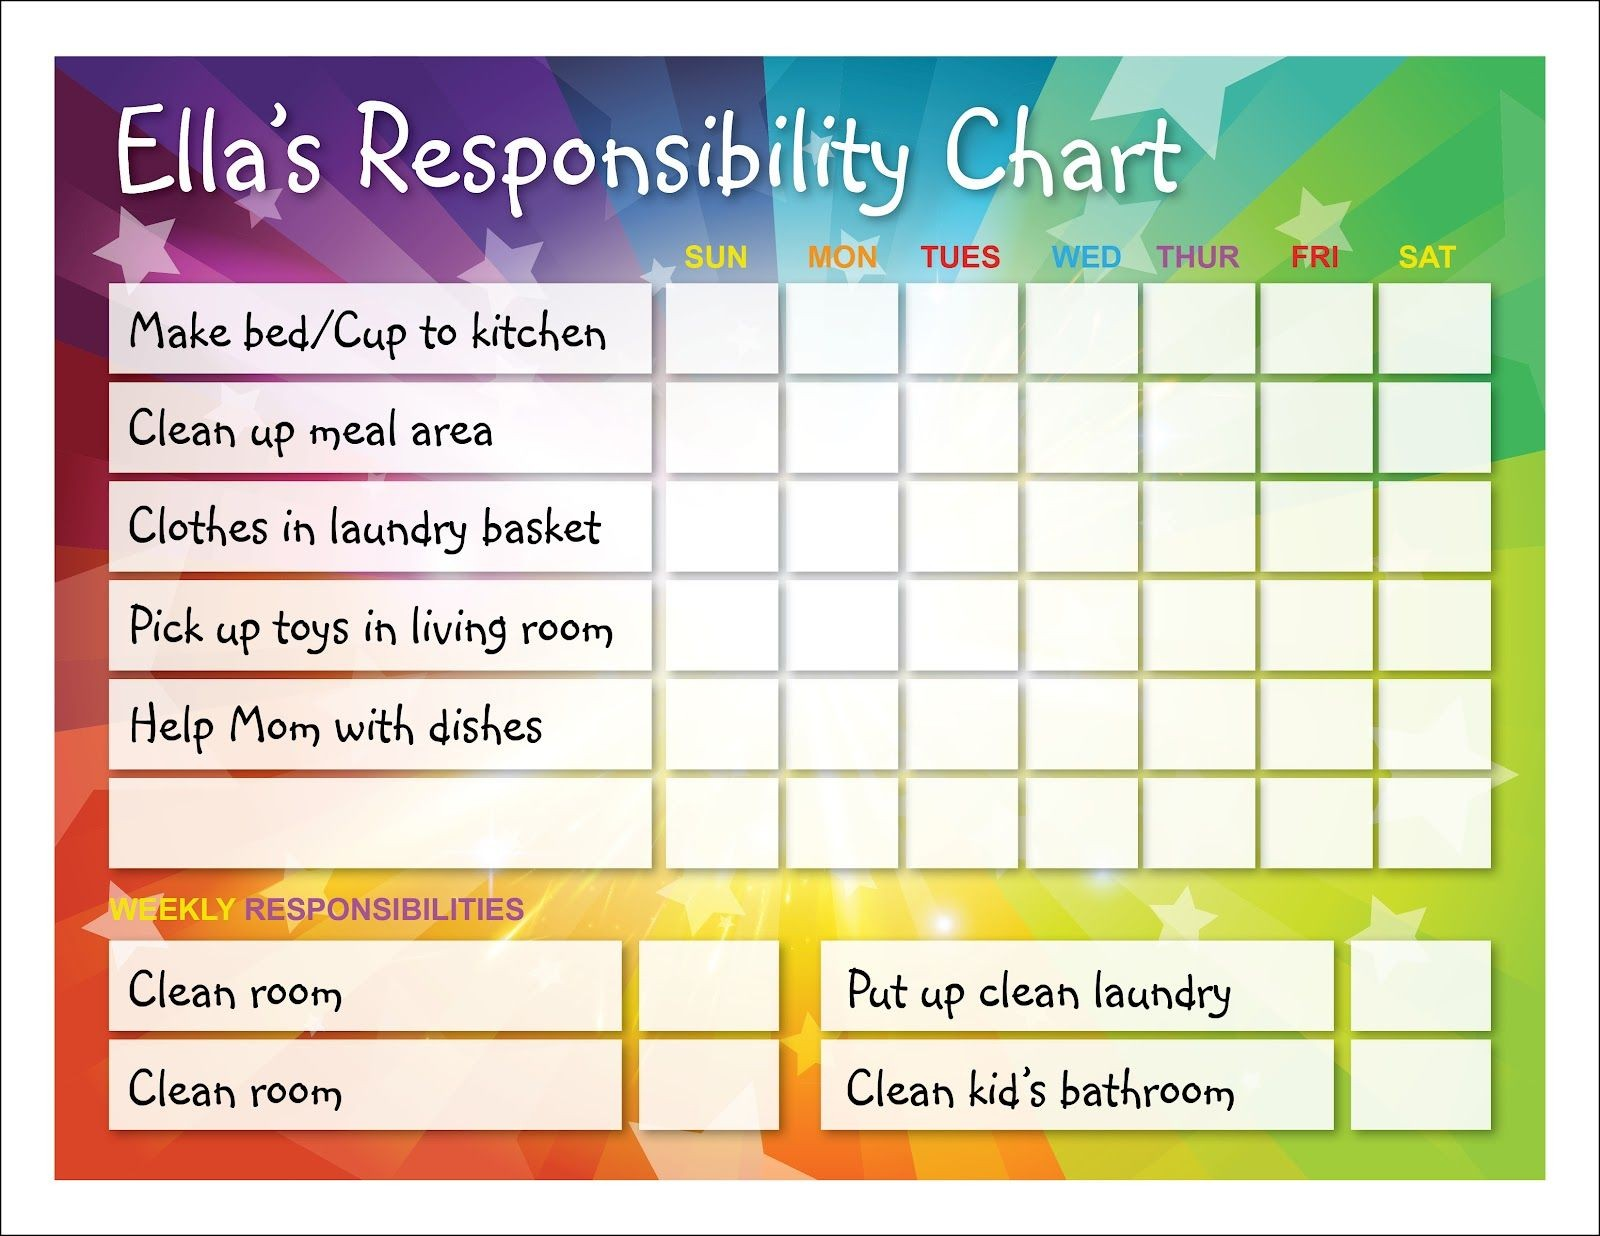 schedule template kids five  5 year old kids schedule template | Pursuits in Homemaking ..